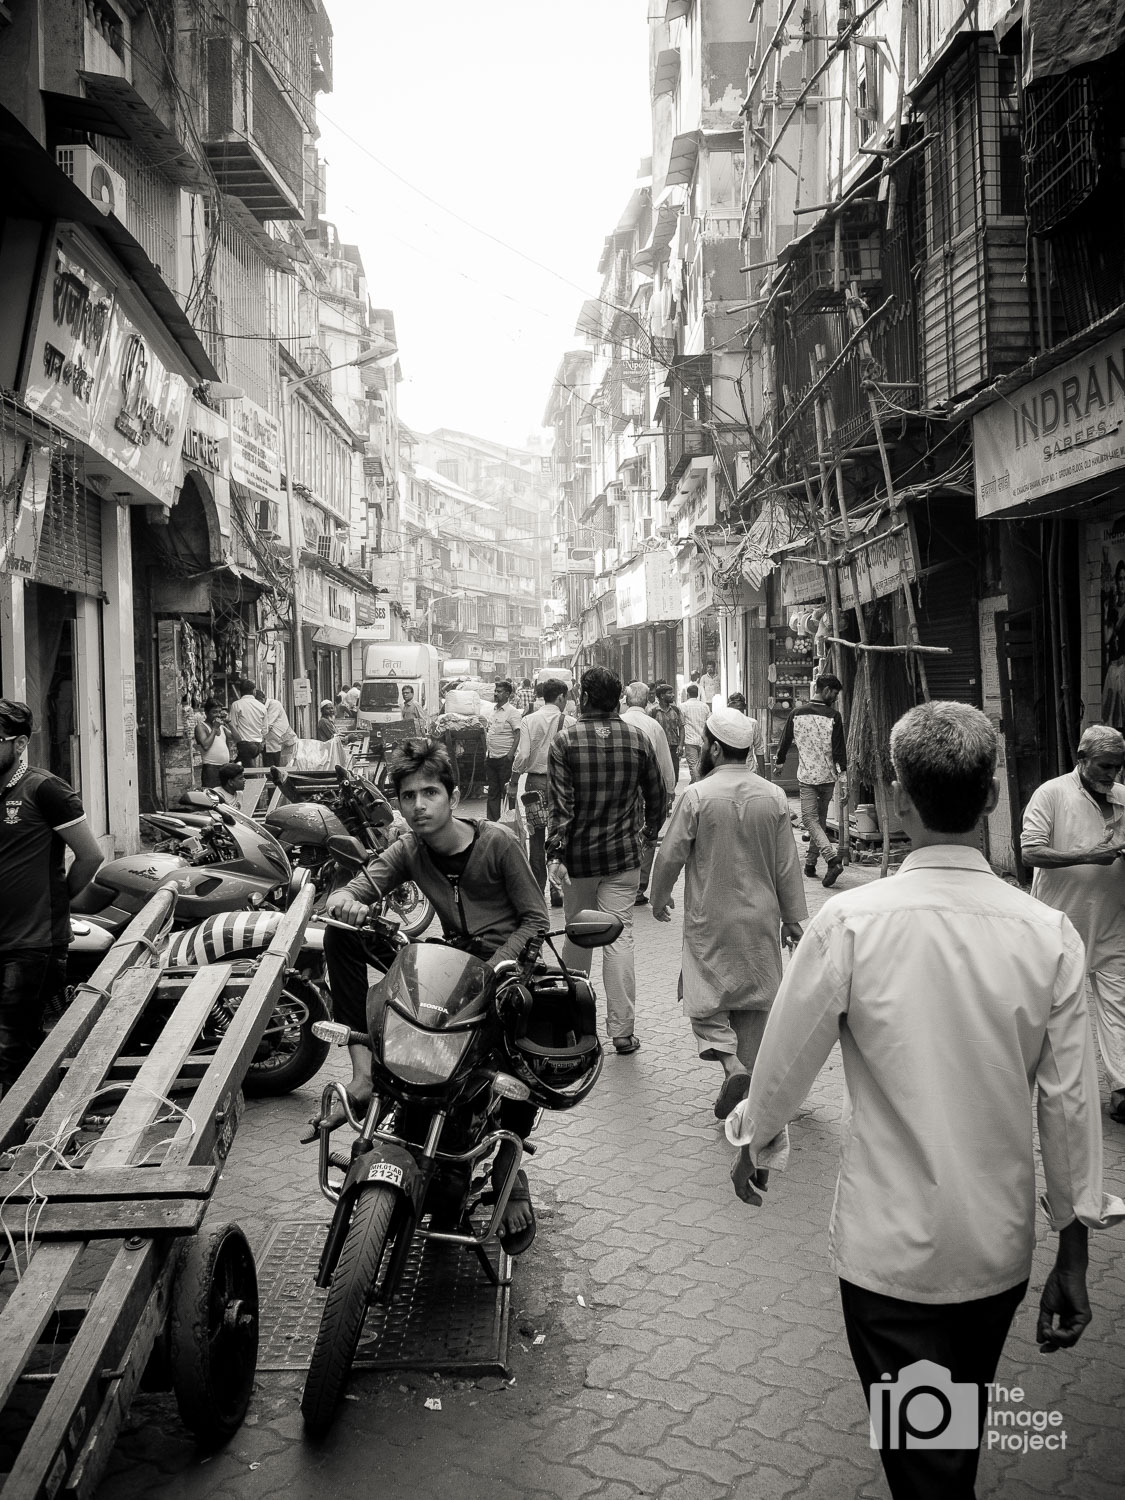 india mumbai street shot by nathan barry the image project wexmondays competition